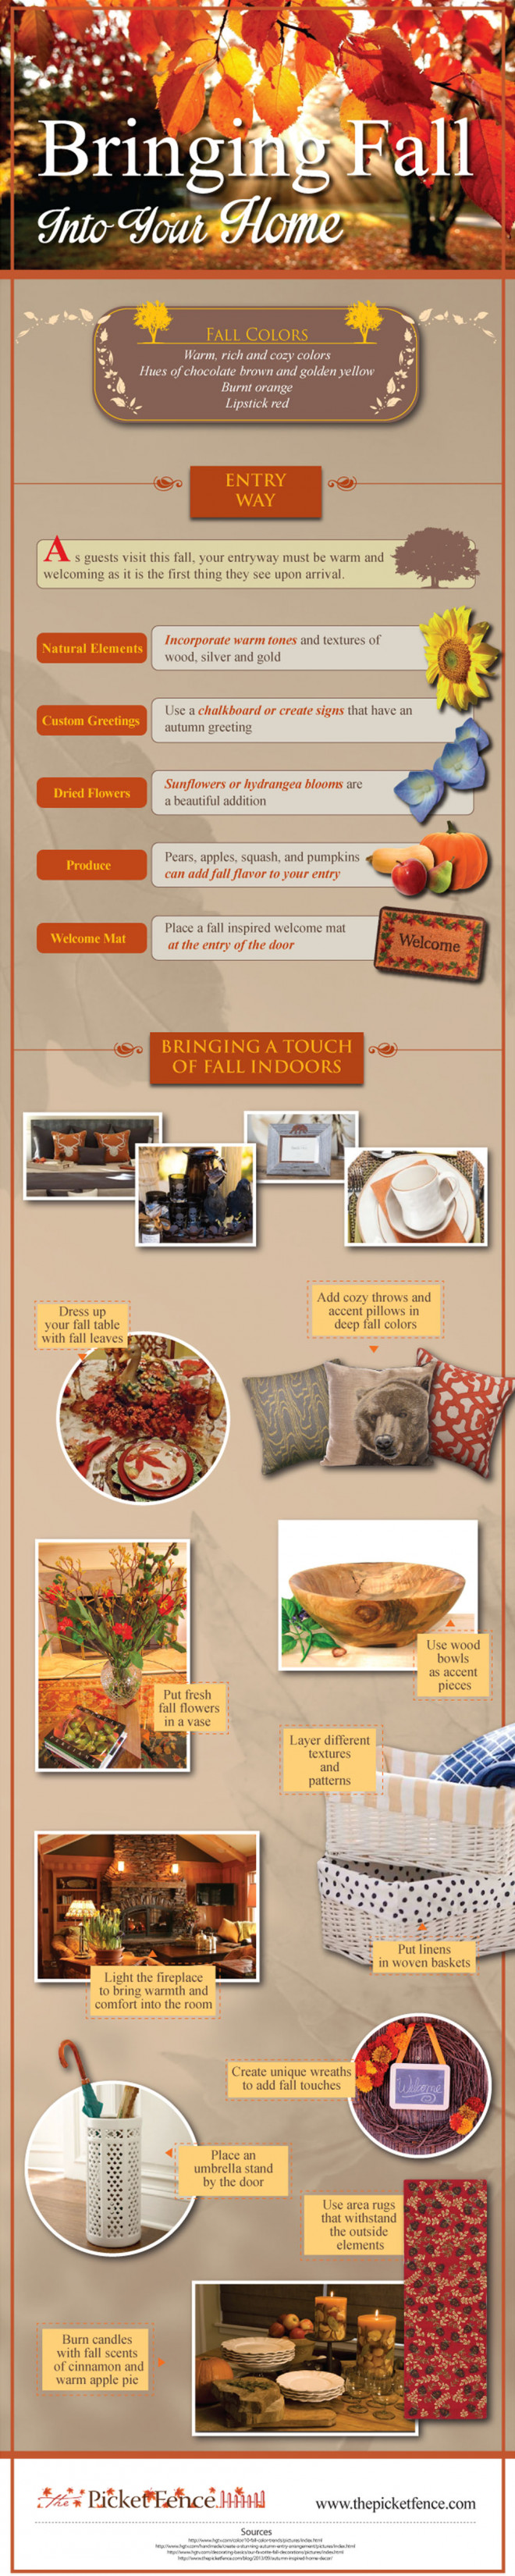 How to Bring the Scents, Colors and Textures of Fall into Your Home - Infographic